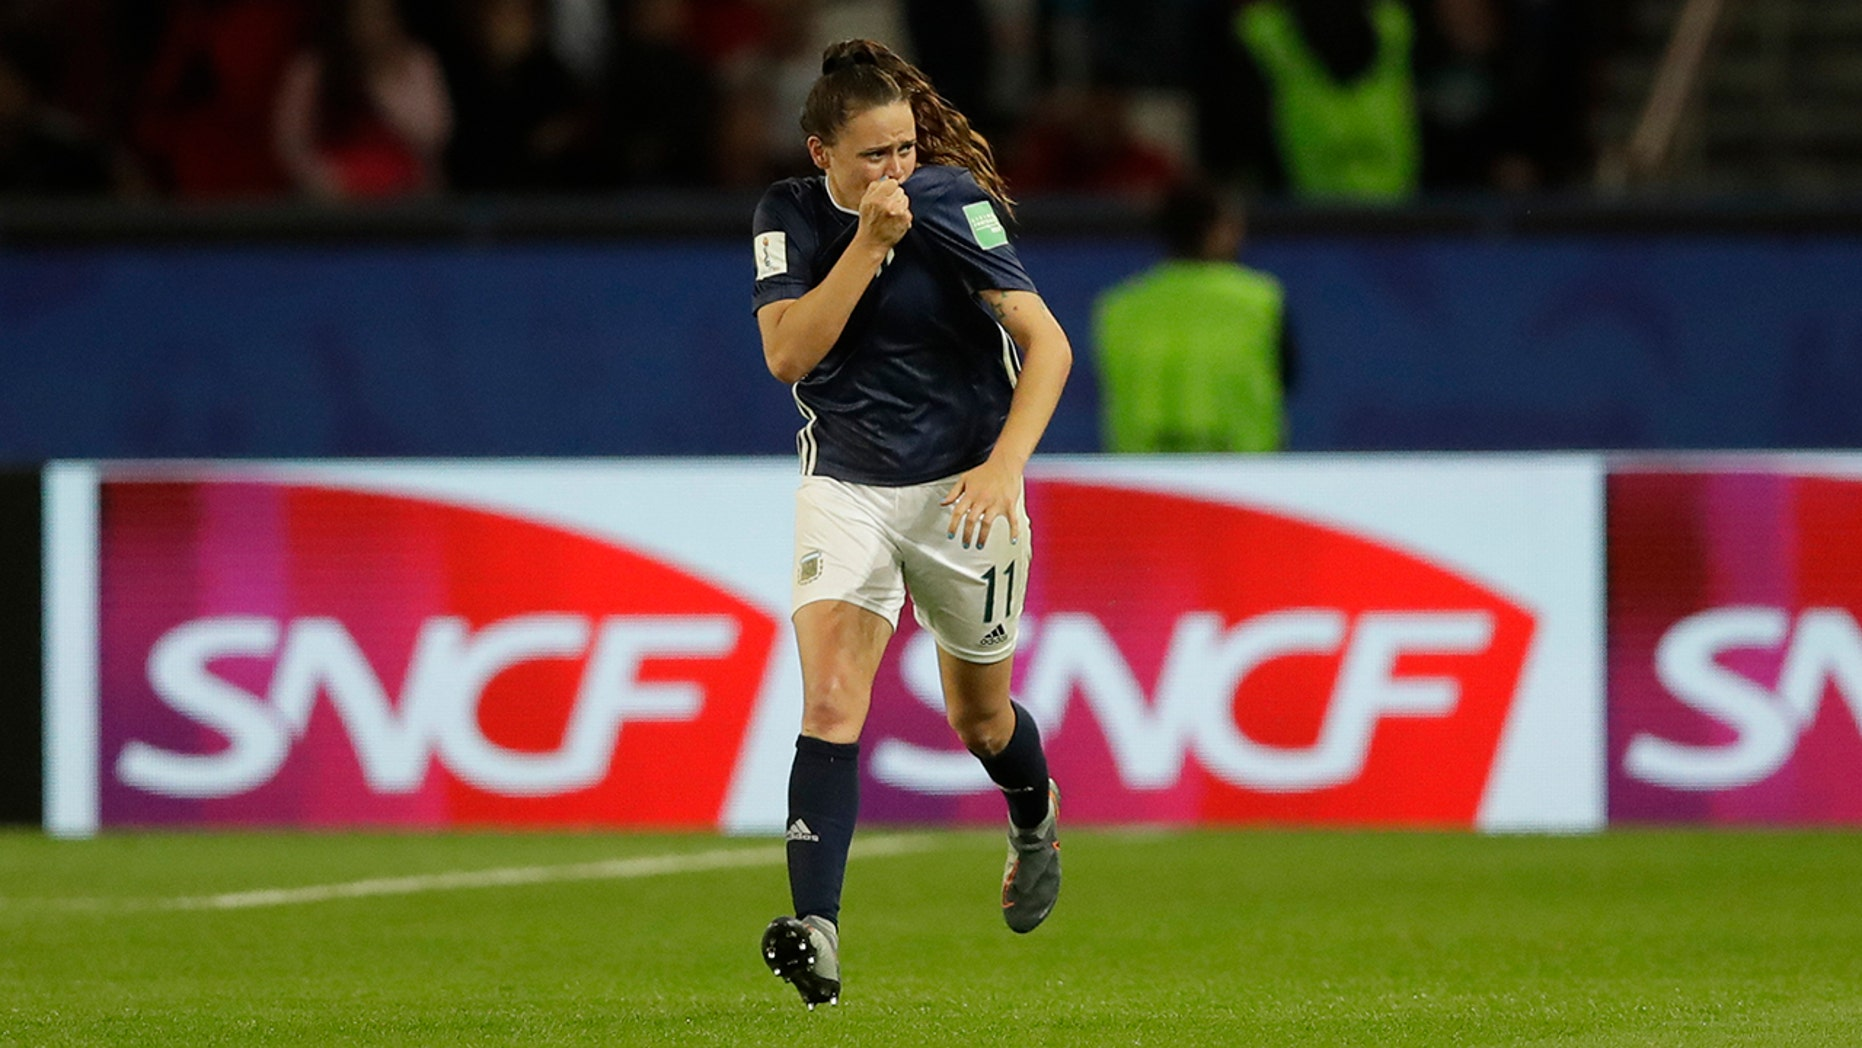 Argentina's Florencia Bonsegundo celebrates after scoring an equaliser goal during the Women's World Cup Group D soccer match between Scotland and Argentina at Parc des Princes in Paris, France, Wednesday, June 19, 2019. Bonsegundo scored in the extra time and the match ended in a 3-3 draw. (AP Photo/Alessandra Tarantino)